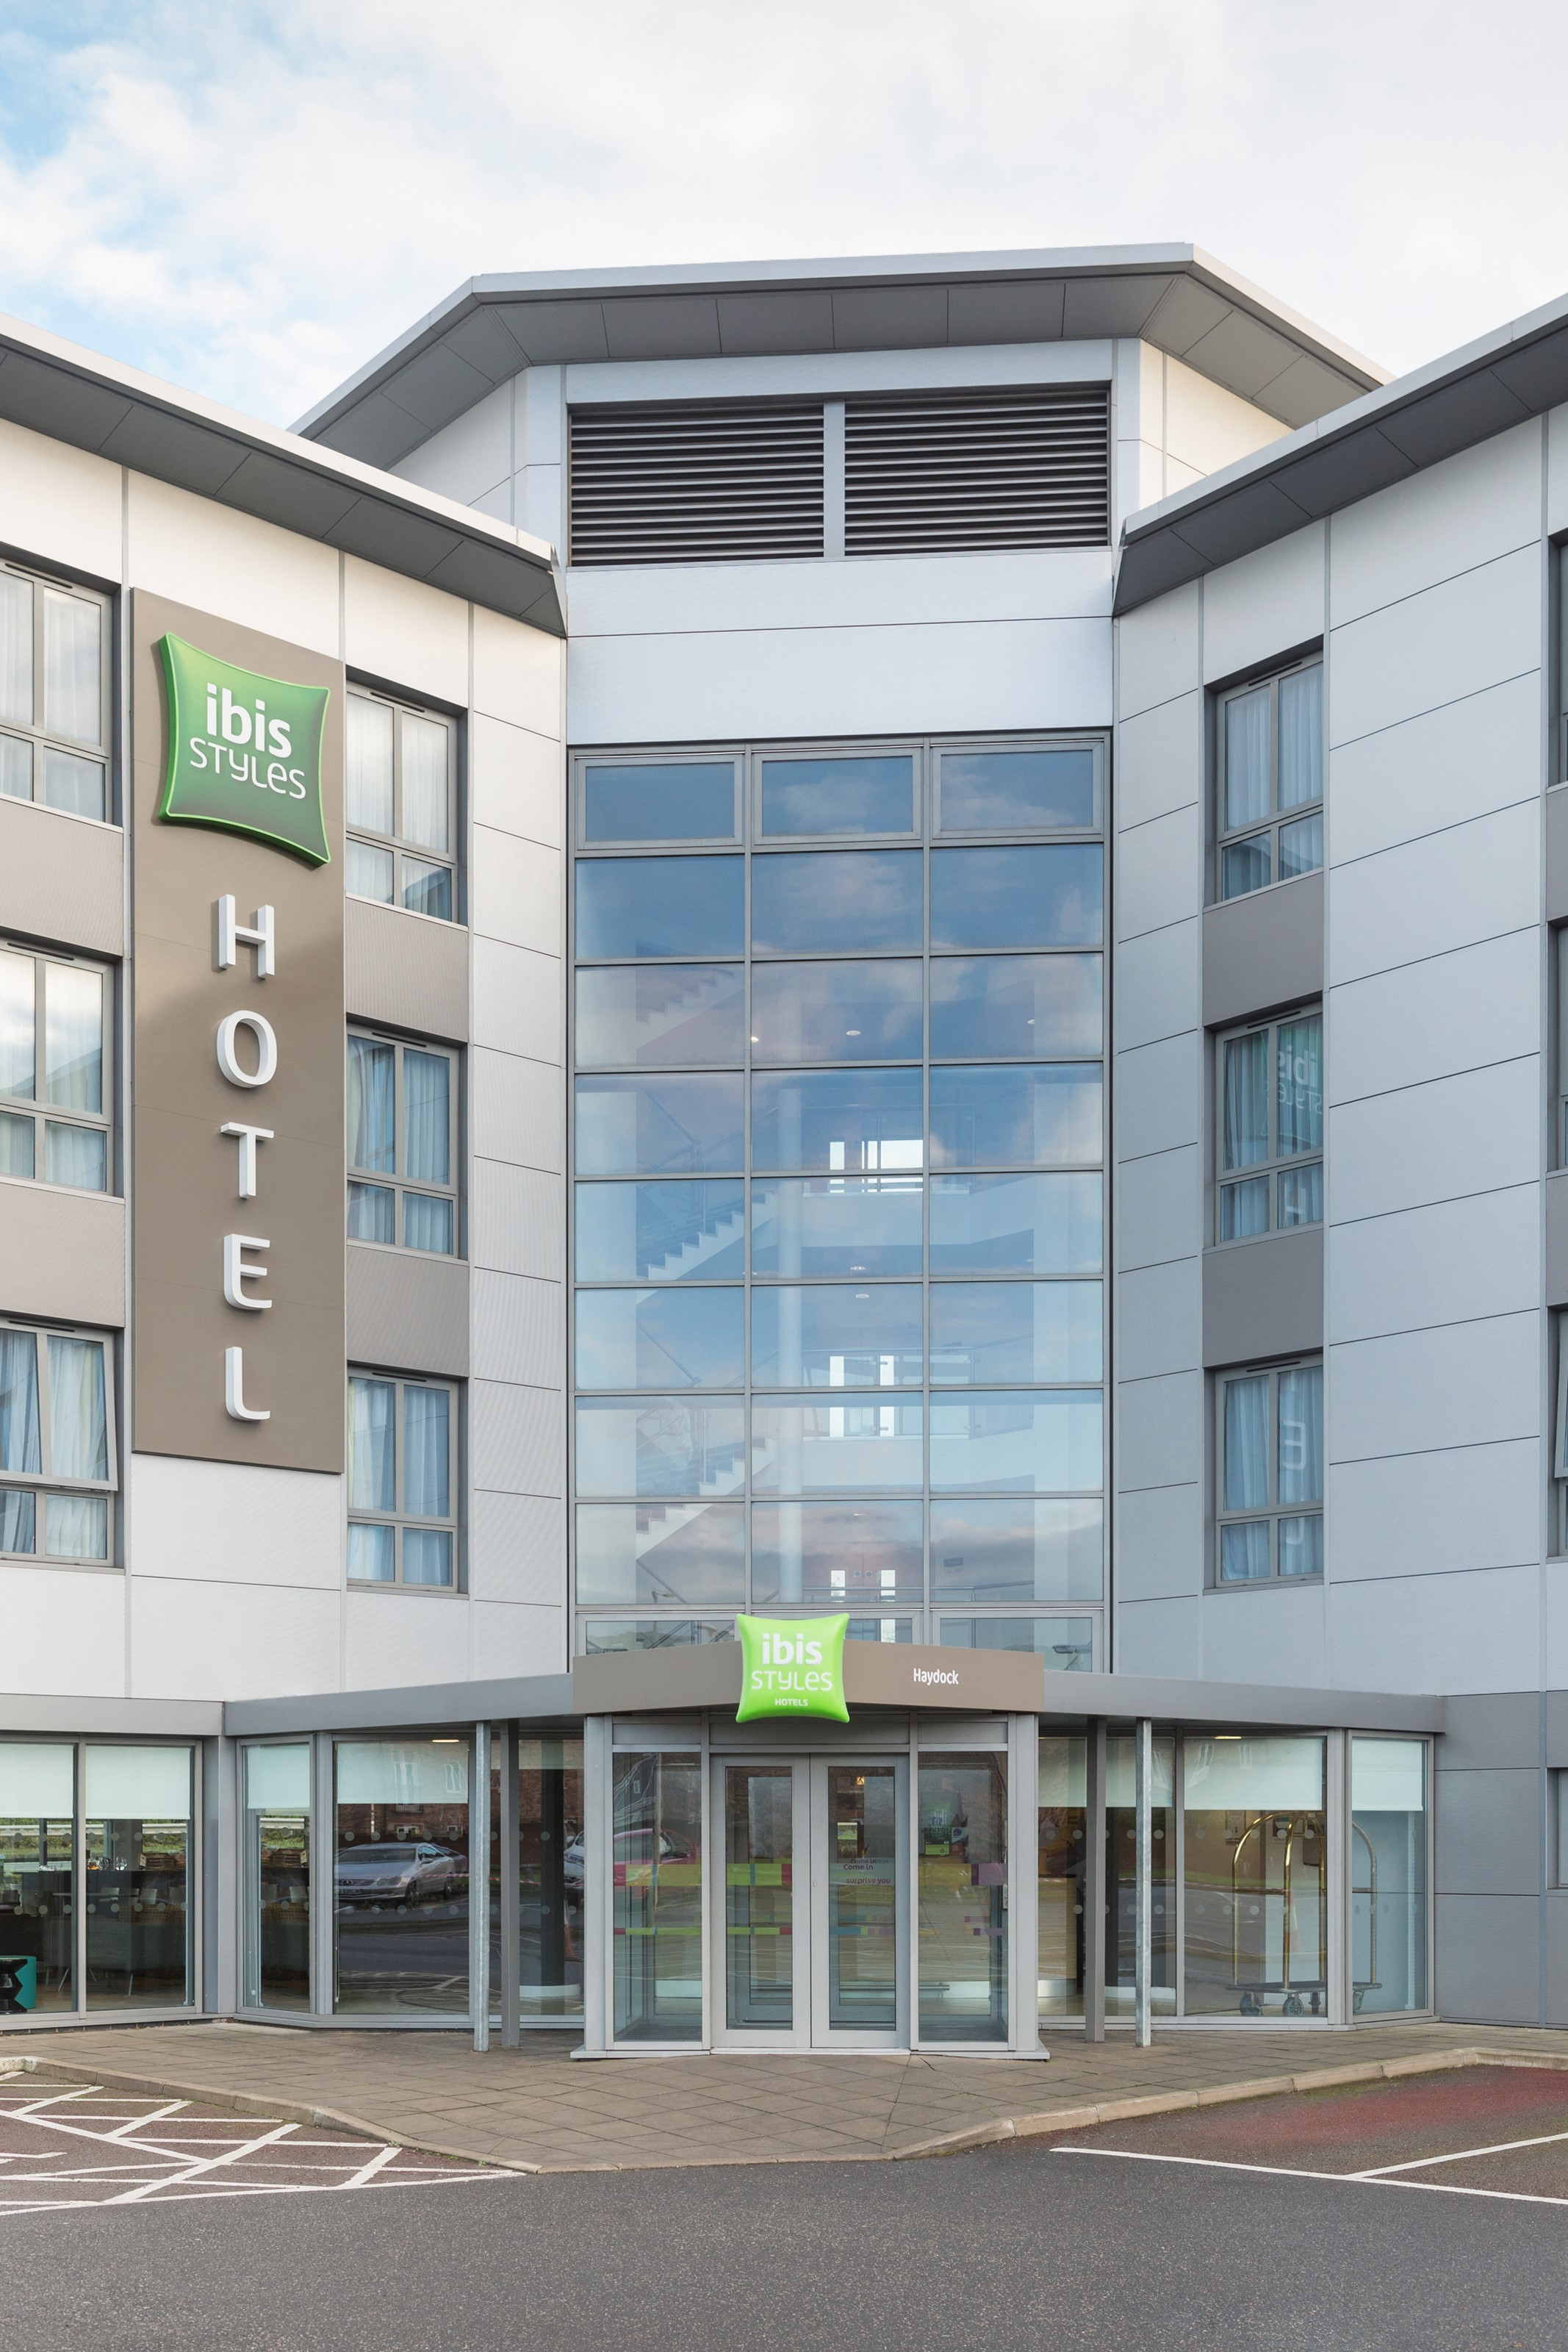 Picture of Ibis Styles Haydock